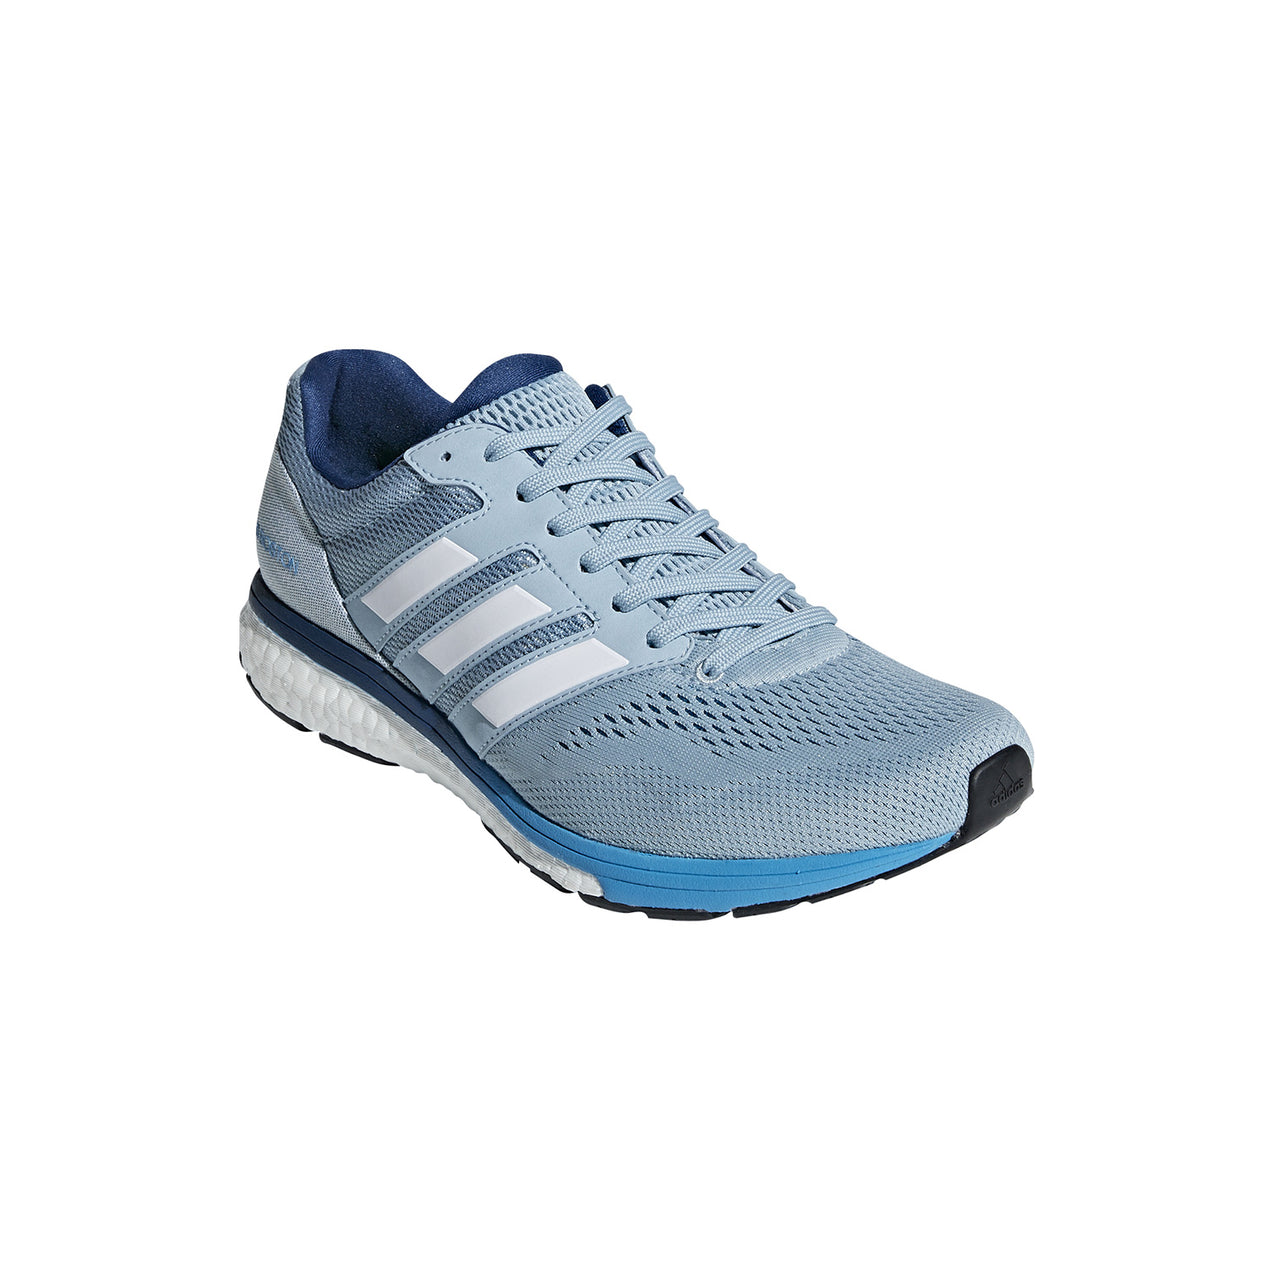 super popular 3f8ce 2b092 ... Adizero Boston 7 Running Shoes - Mens thumb ...